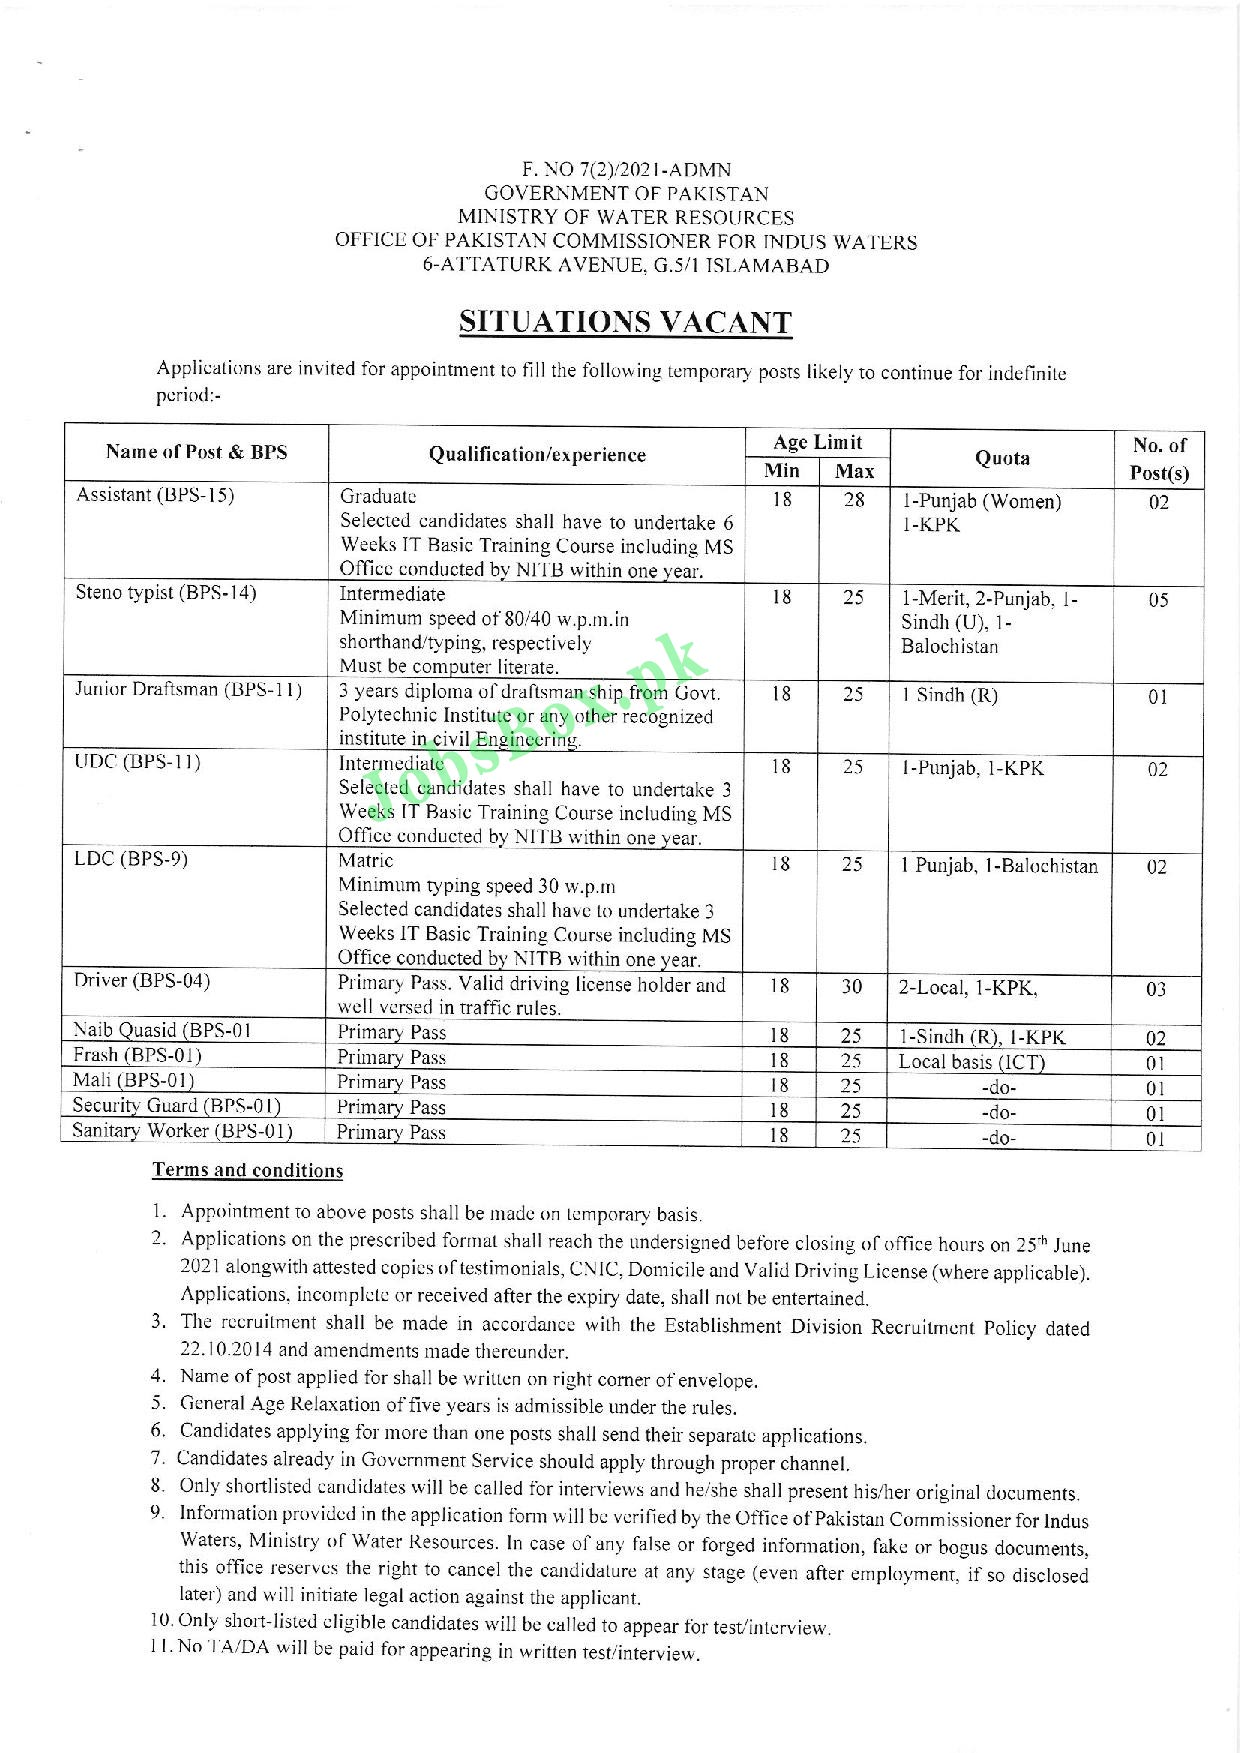 www.mowr.gov.pk Application Form 2021 - Ministry of Water Resources MOWR Jobs 2021 Latest Advertisement